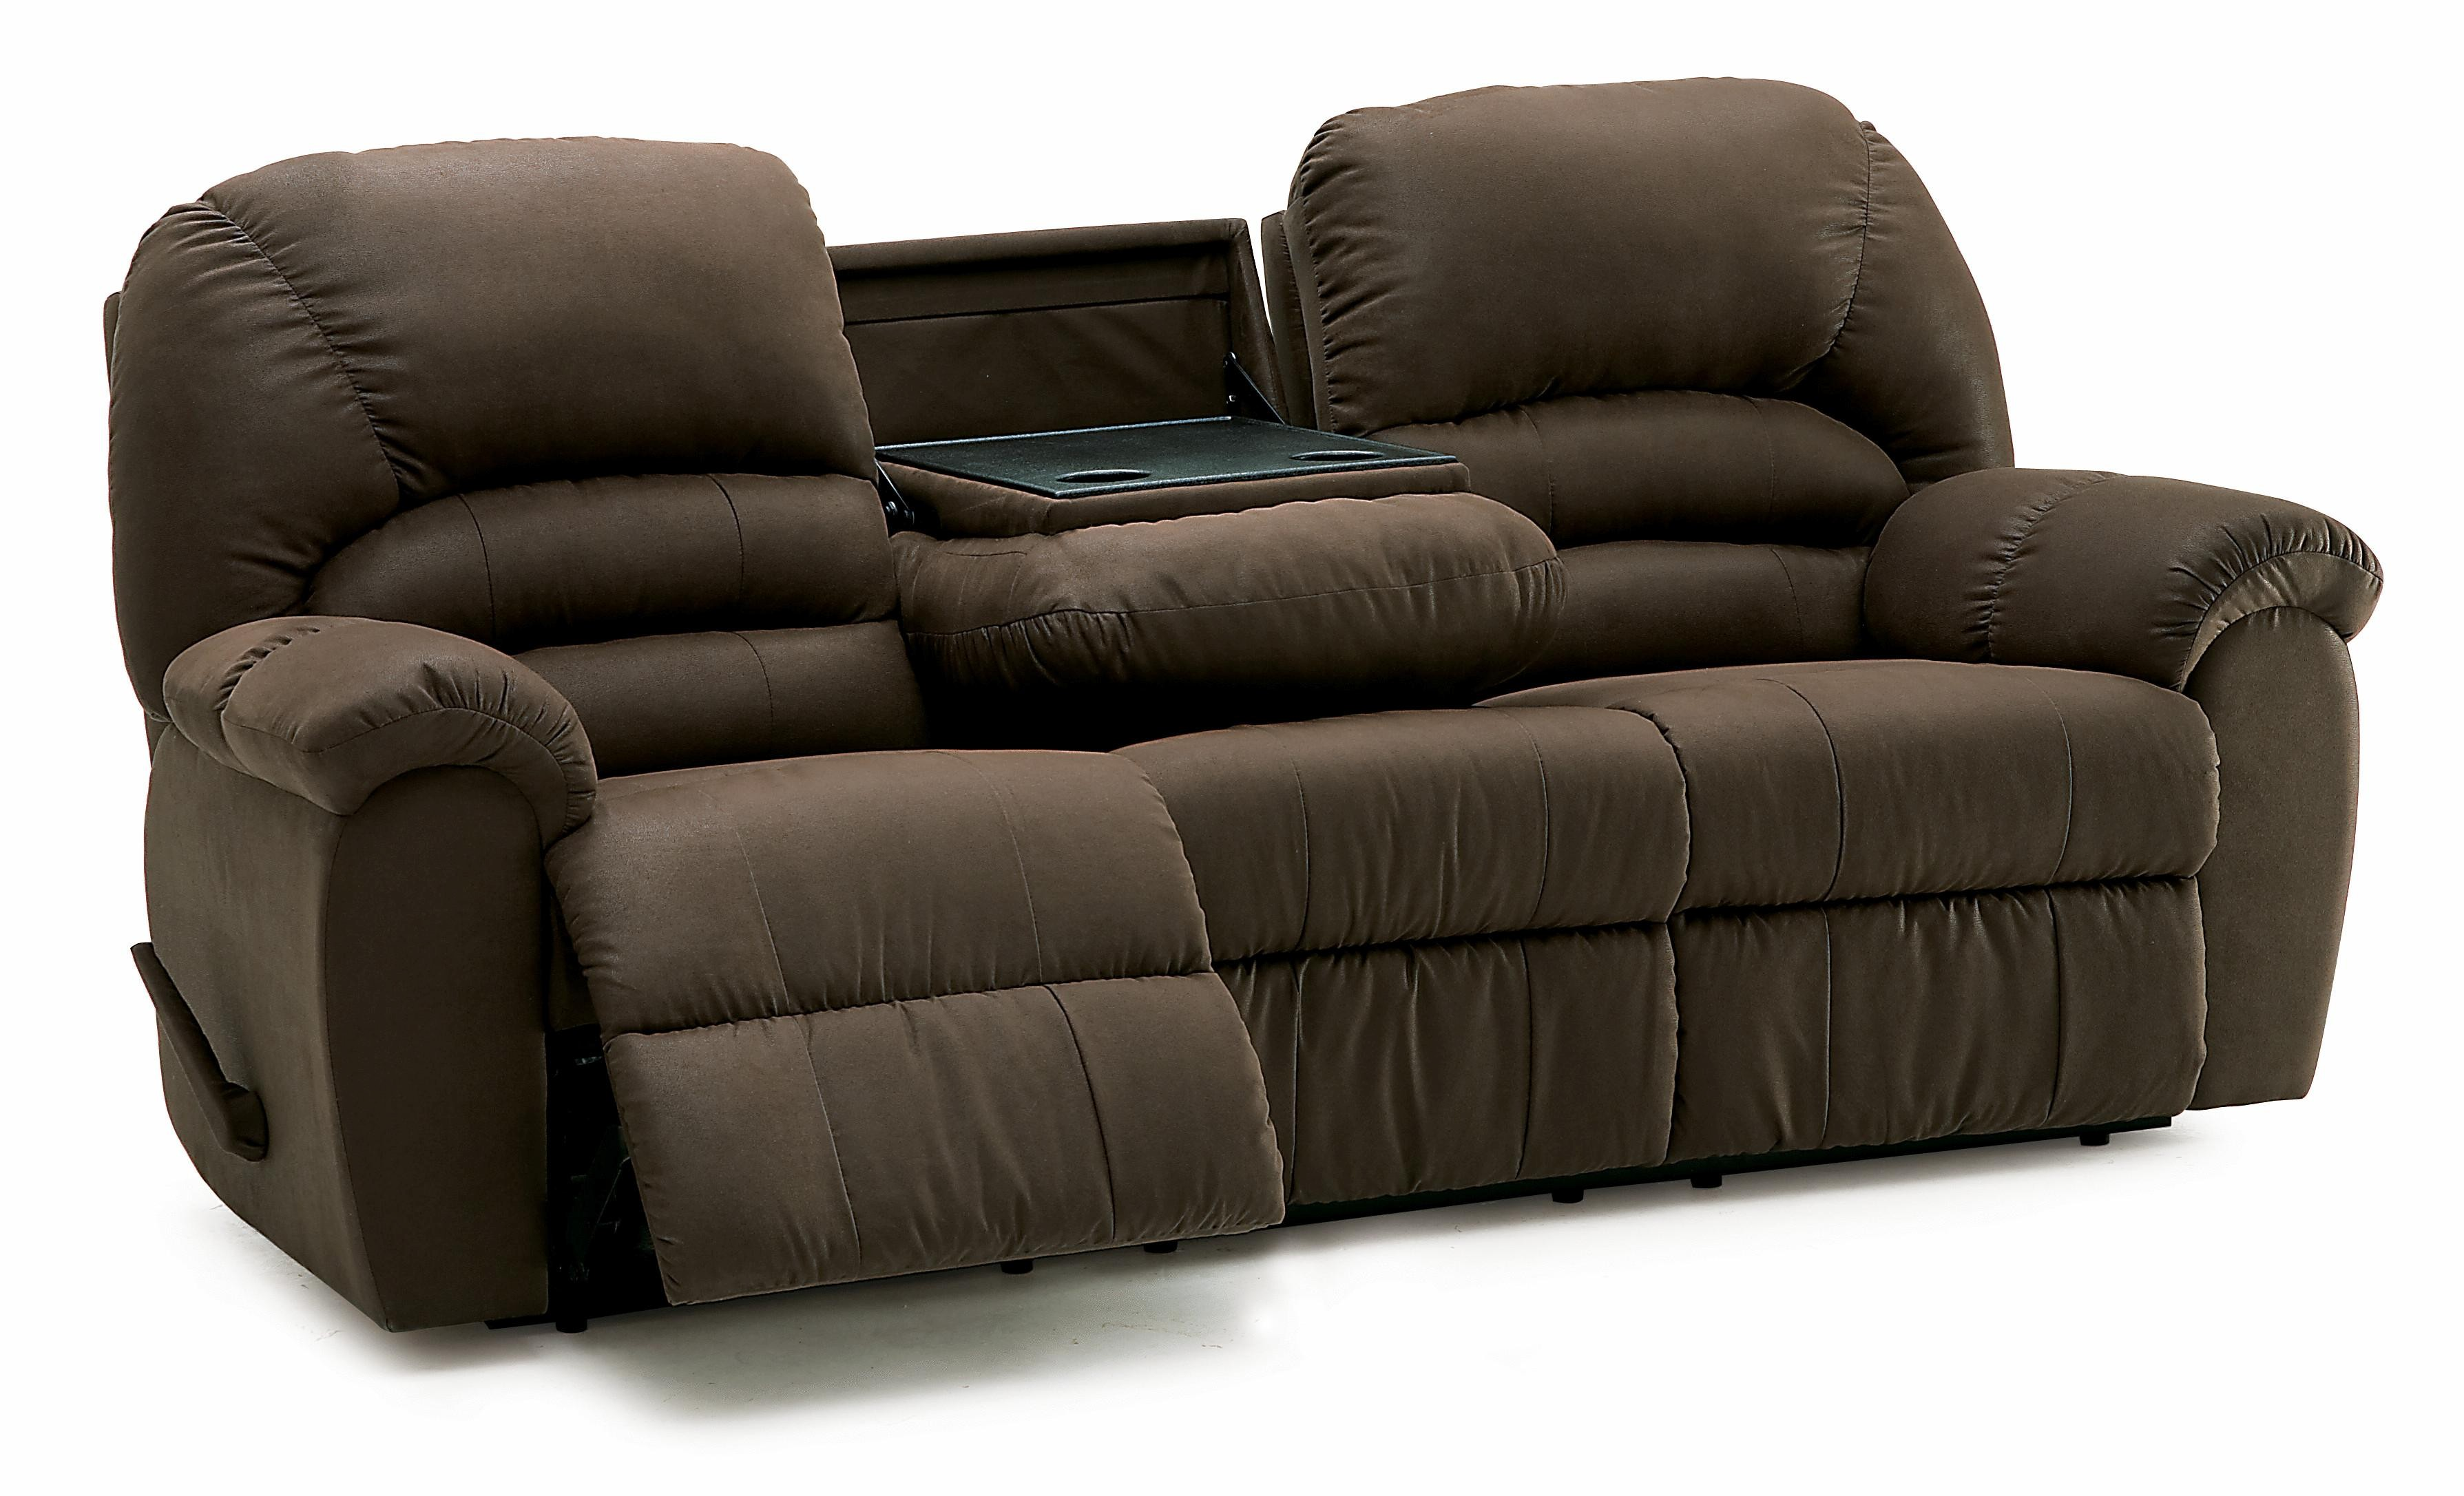 Reclining sofa with Drop Down Table Finest Palliser Taurus Casual Reclining sofa with Center Drop Down Table Plan